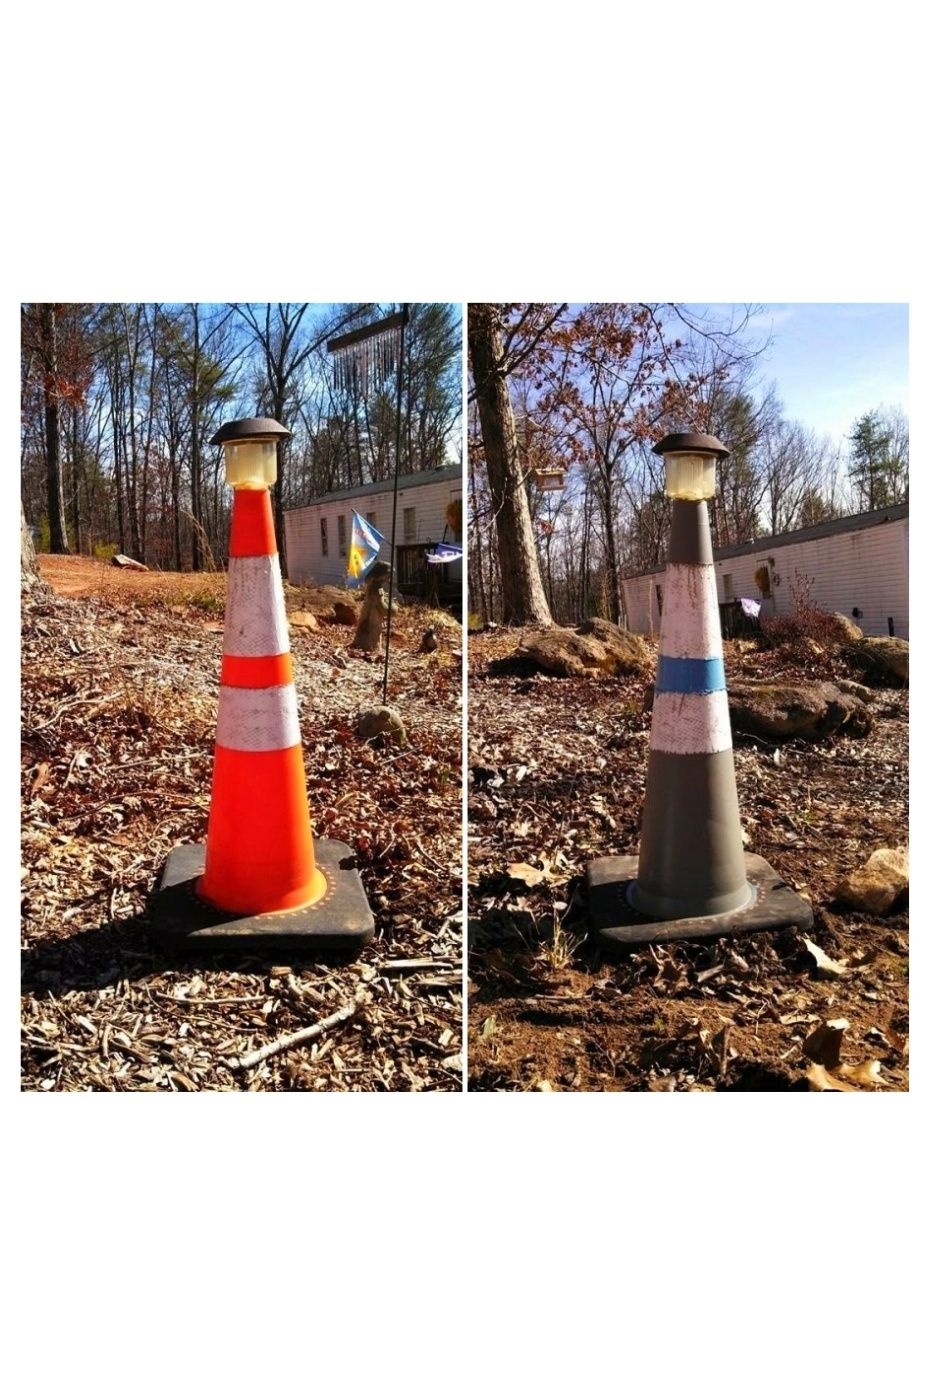 Lighthouse Out Of Traffic Cone I Glued A Solar Light That Changes Color To The Top Of The Traffic Cone With Lighthouse Crafts Solar Light Crafts Solar Lights